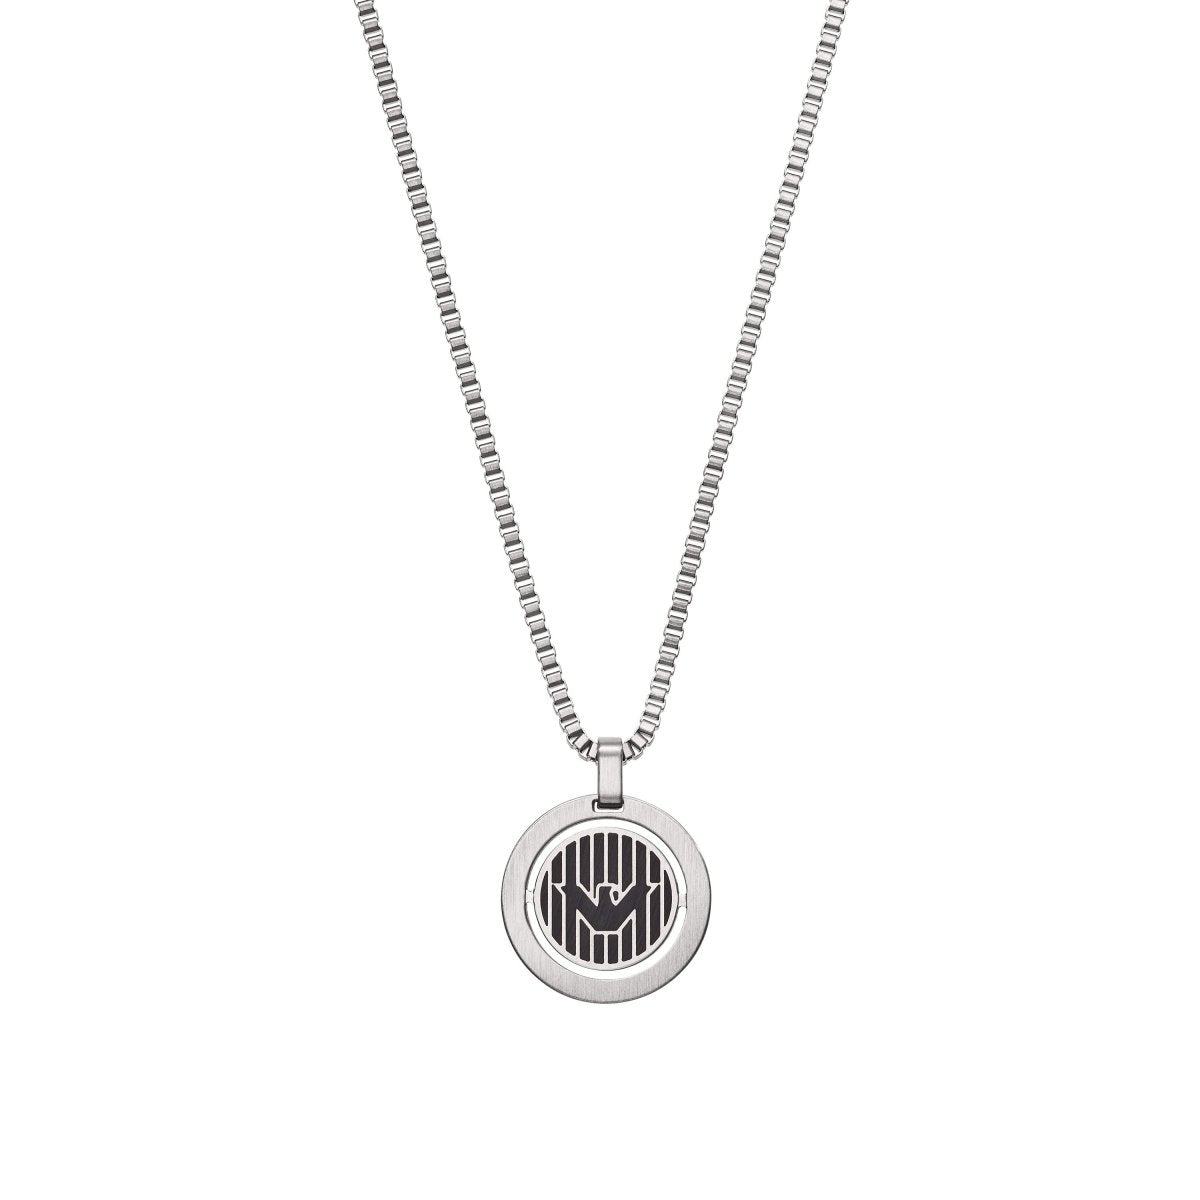 Emporio Armani EGS2725040 Men's Stainless Steel Necklace - Goldy Jewelry Store